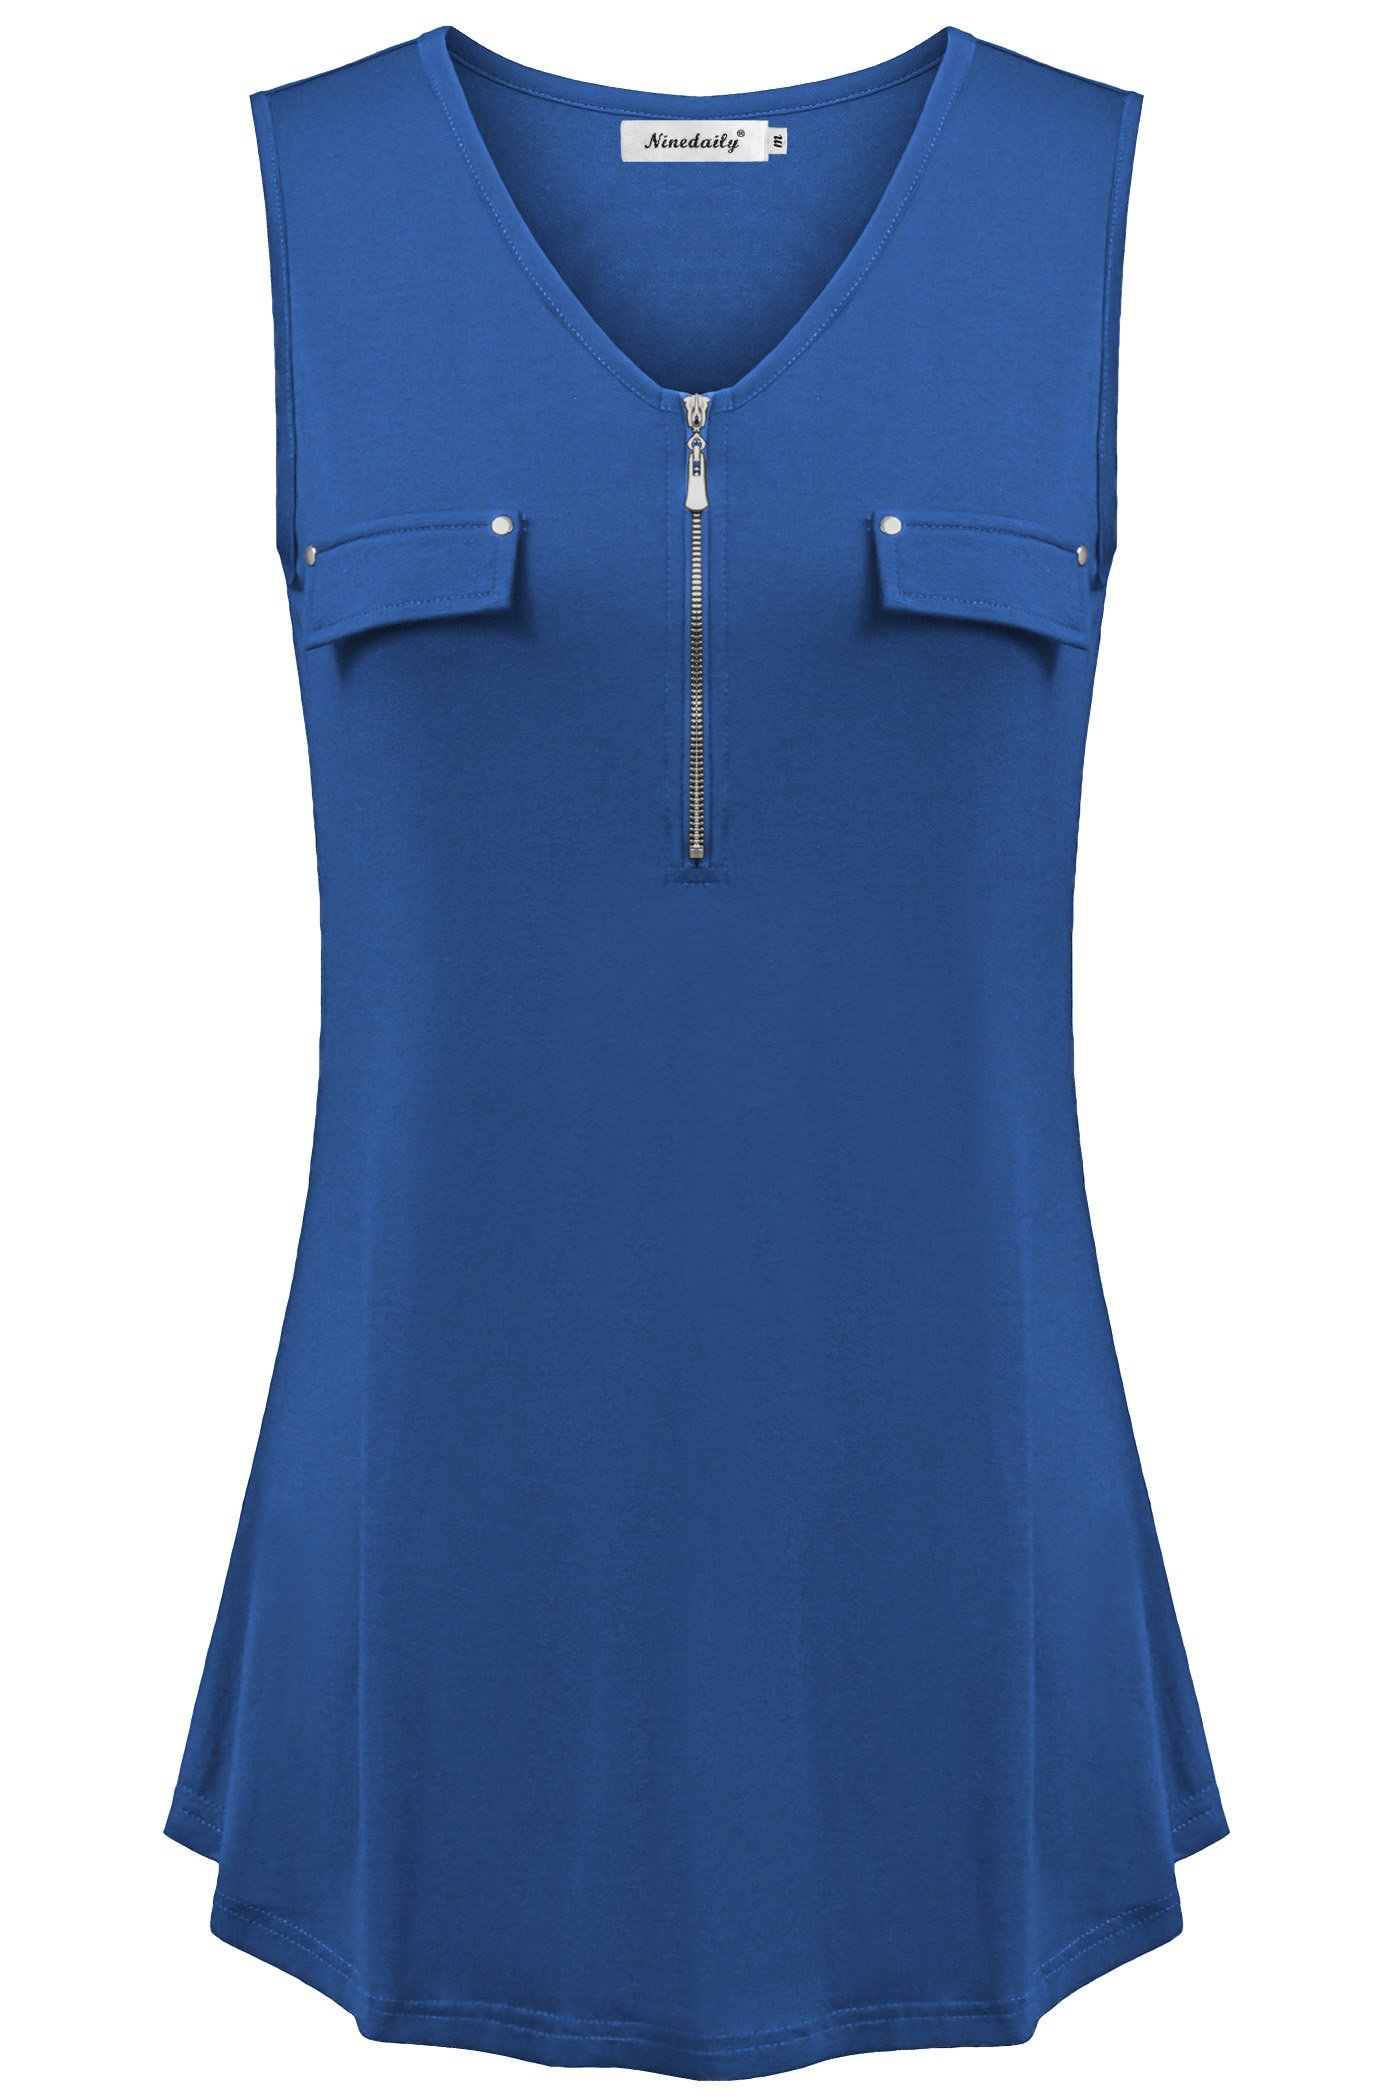 Ninedaily Tunic Tank Top for Women, Plain Blouse for Women for Work Office Business Casual V Neck Henley Summer Casual XXL Tunic Shirt Royal Blue